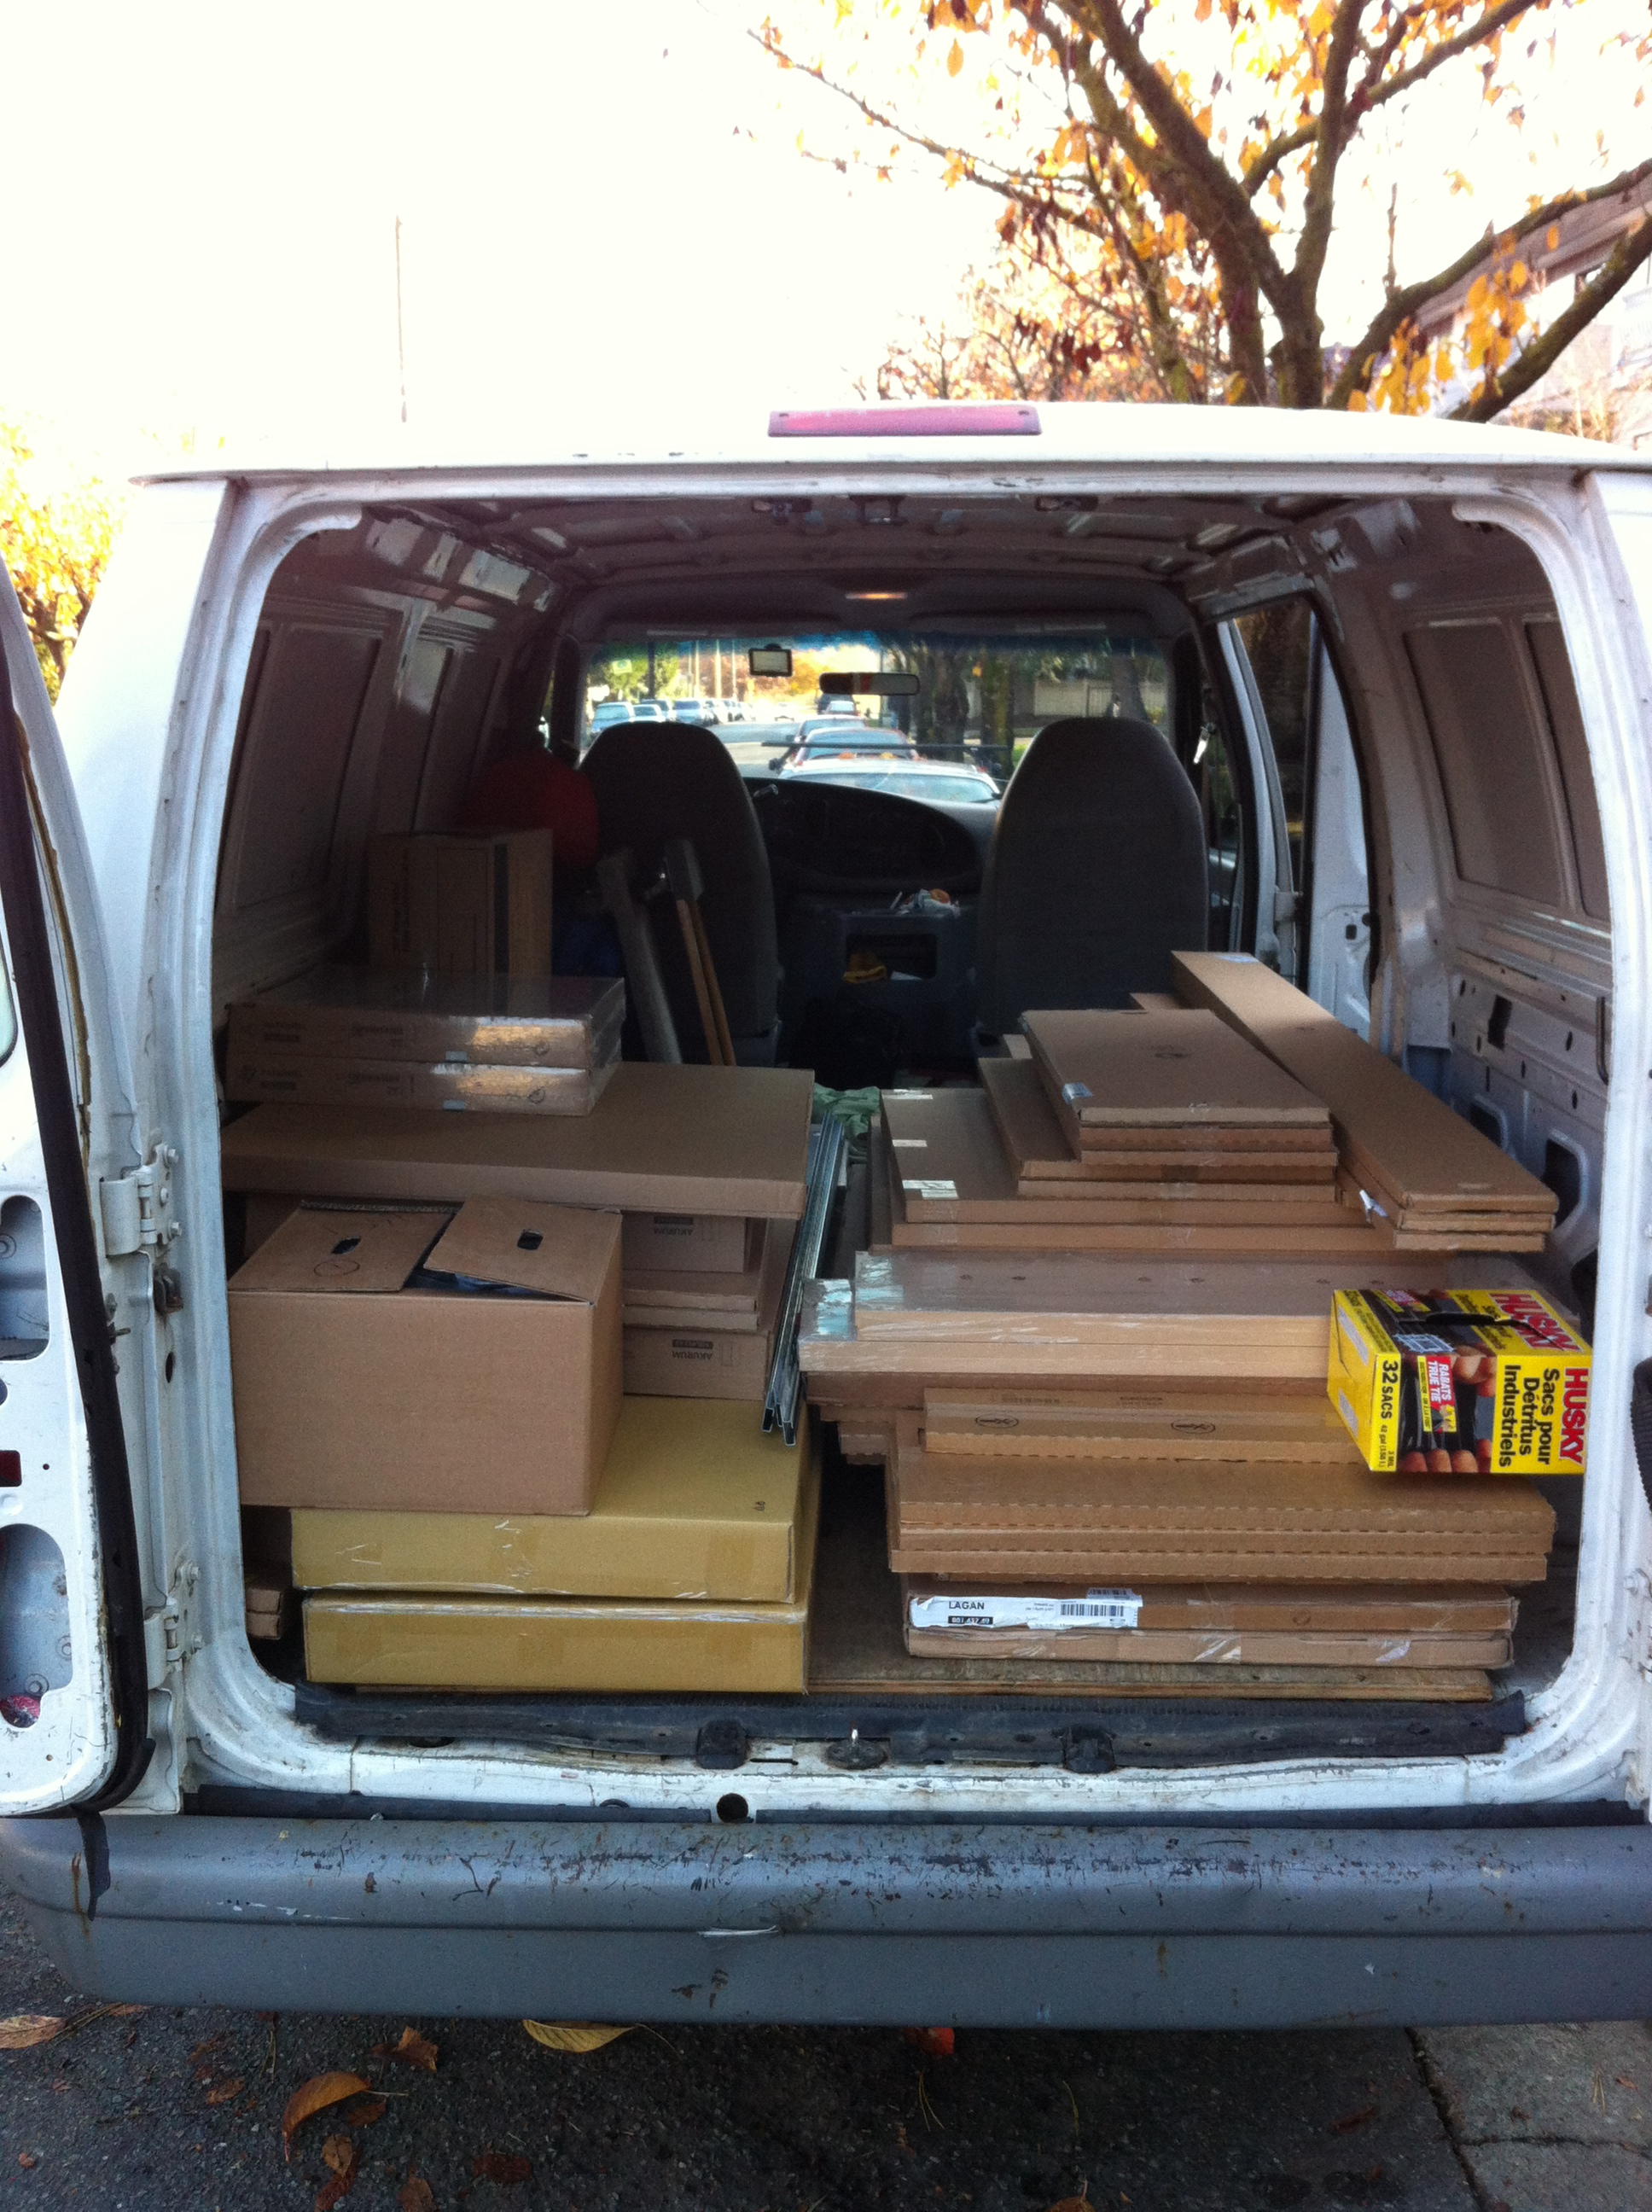 Ikea Richmond Delivery Pictures Sam 39s Small Movessam 39s Small Moves